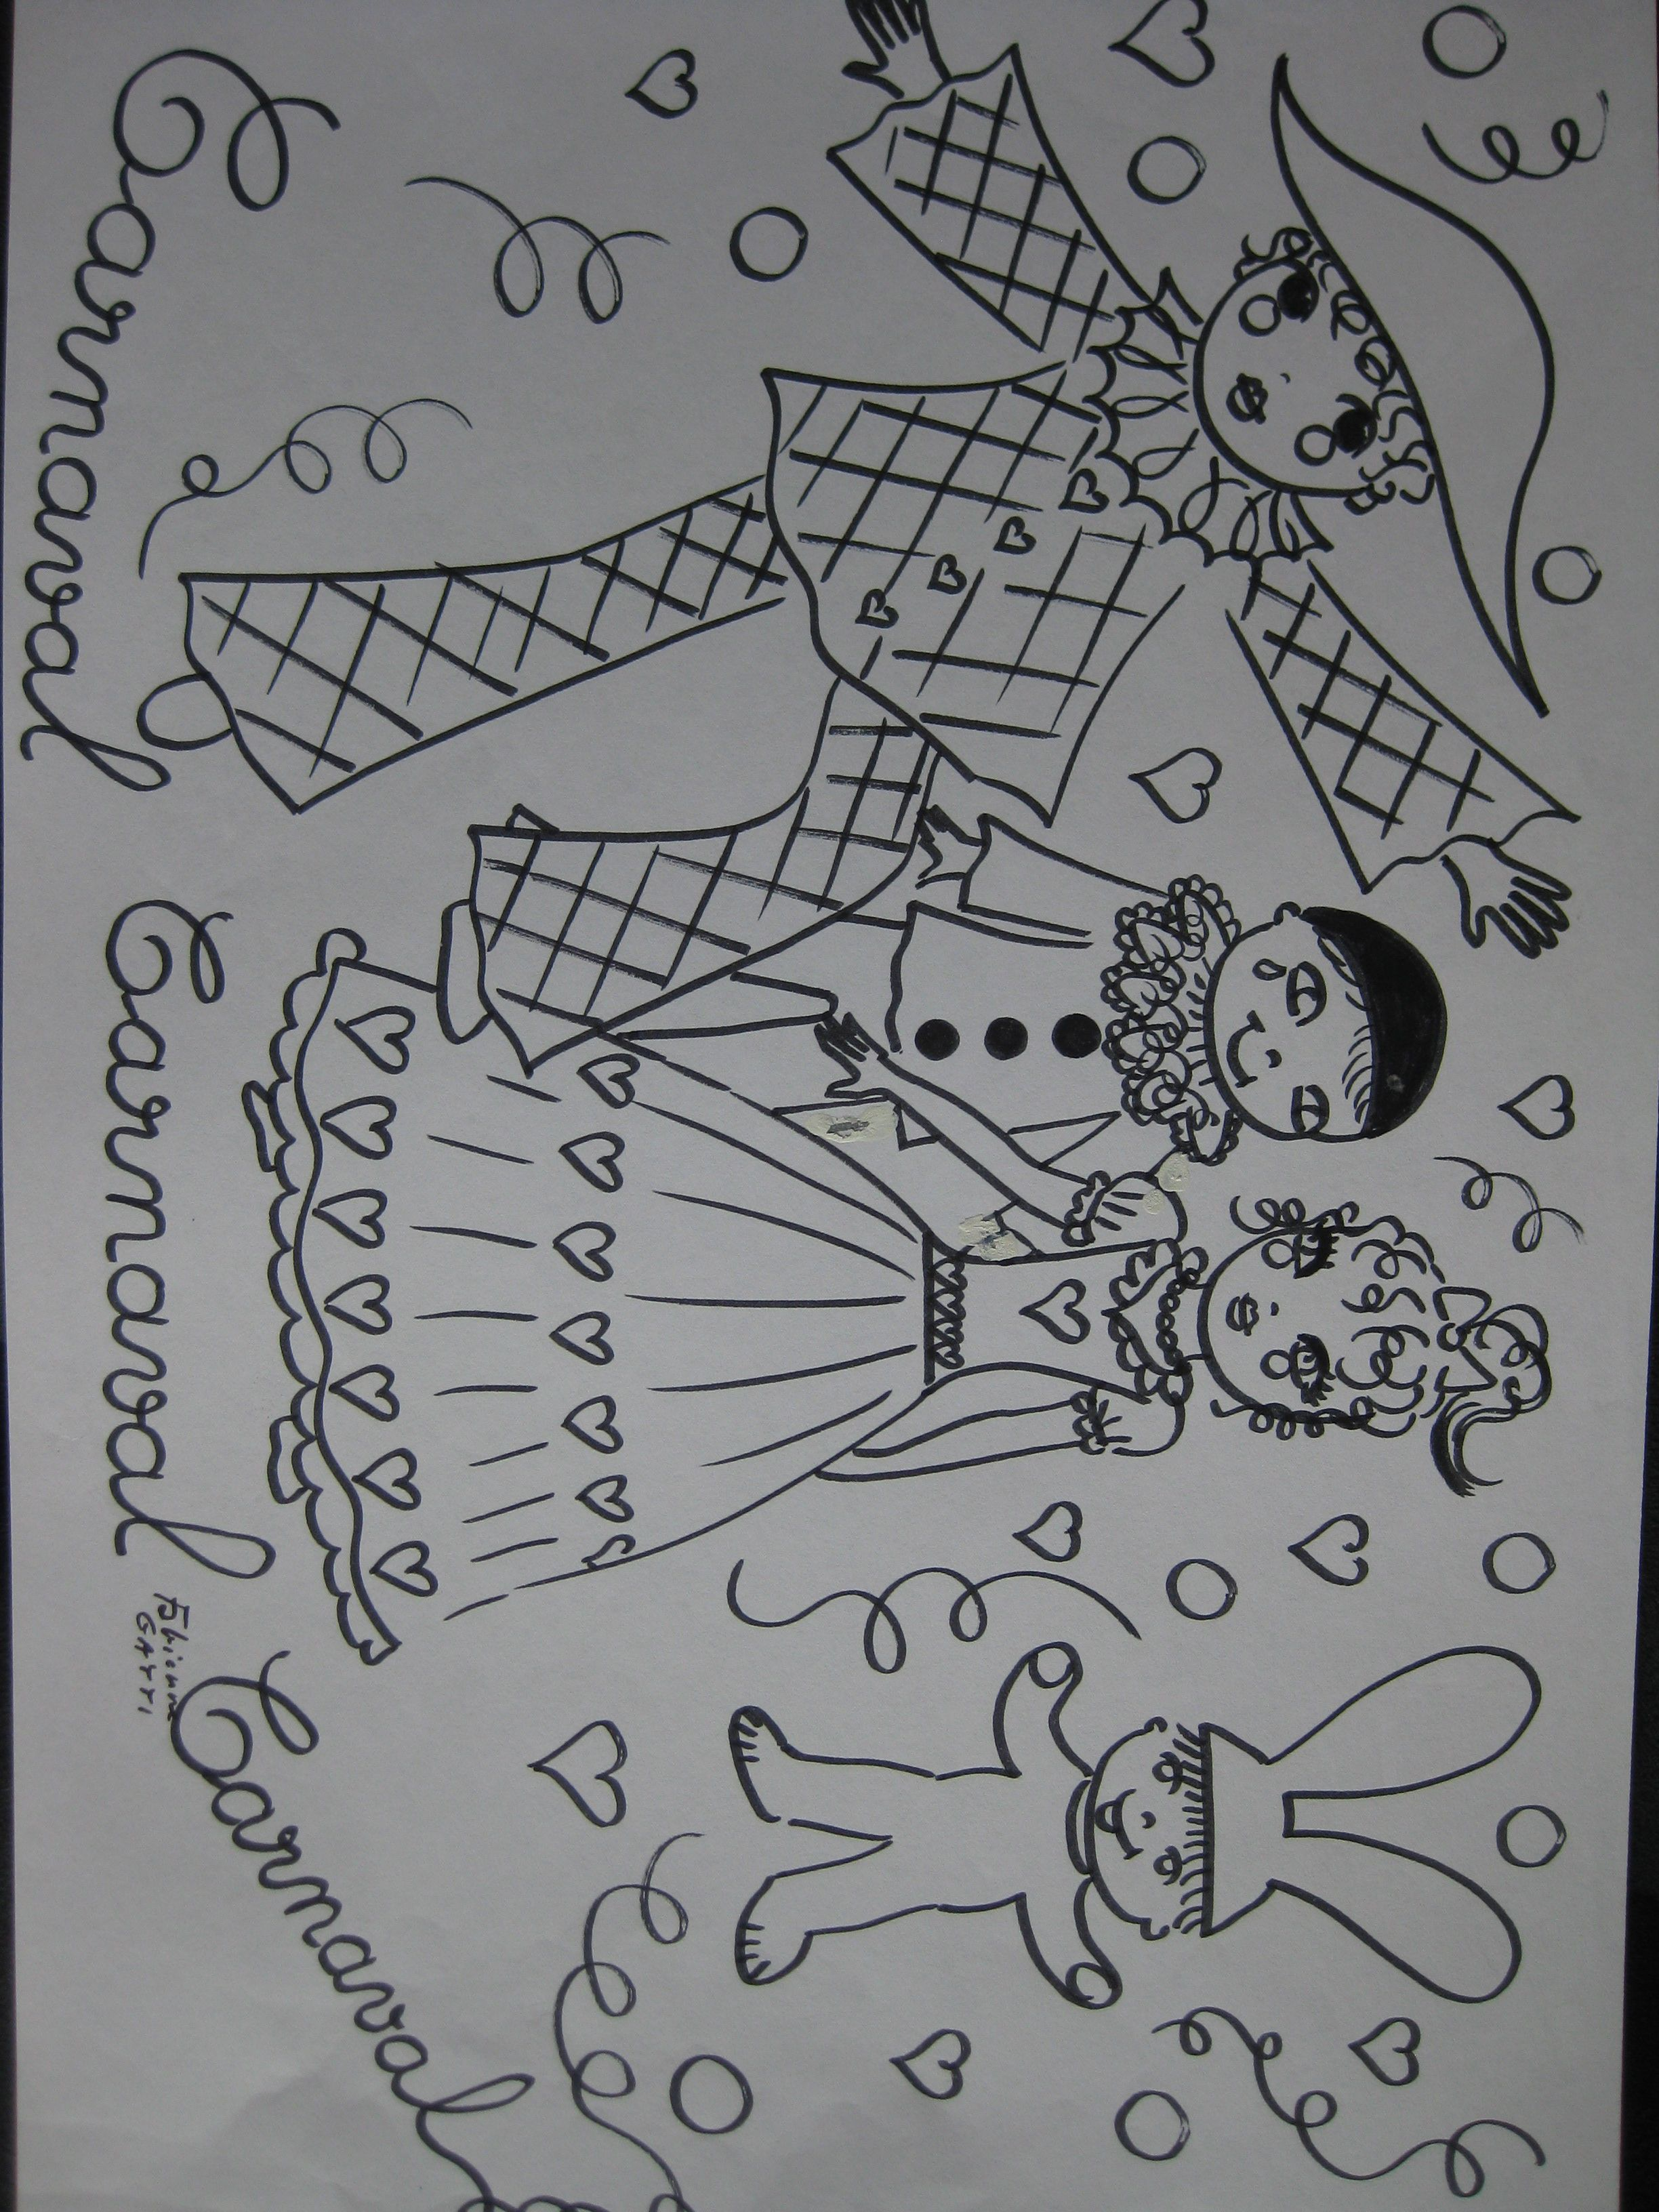 Carnival colouring coloriage carnaval arlequin - Coloriage arlequin maternelle ...